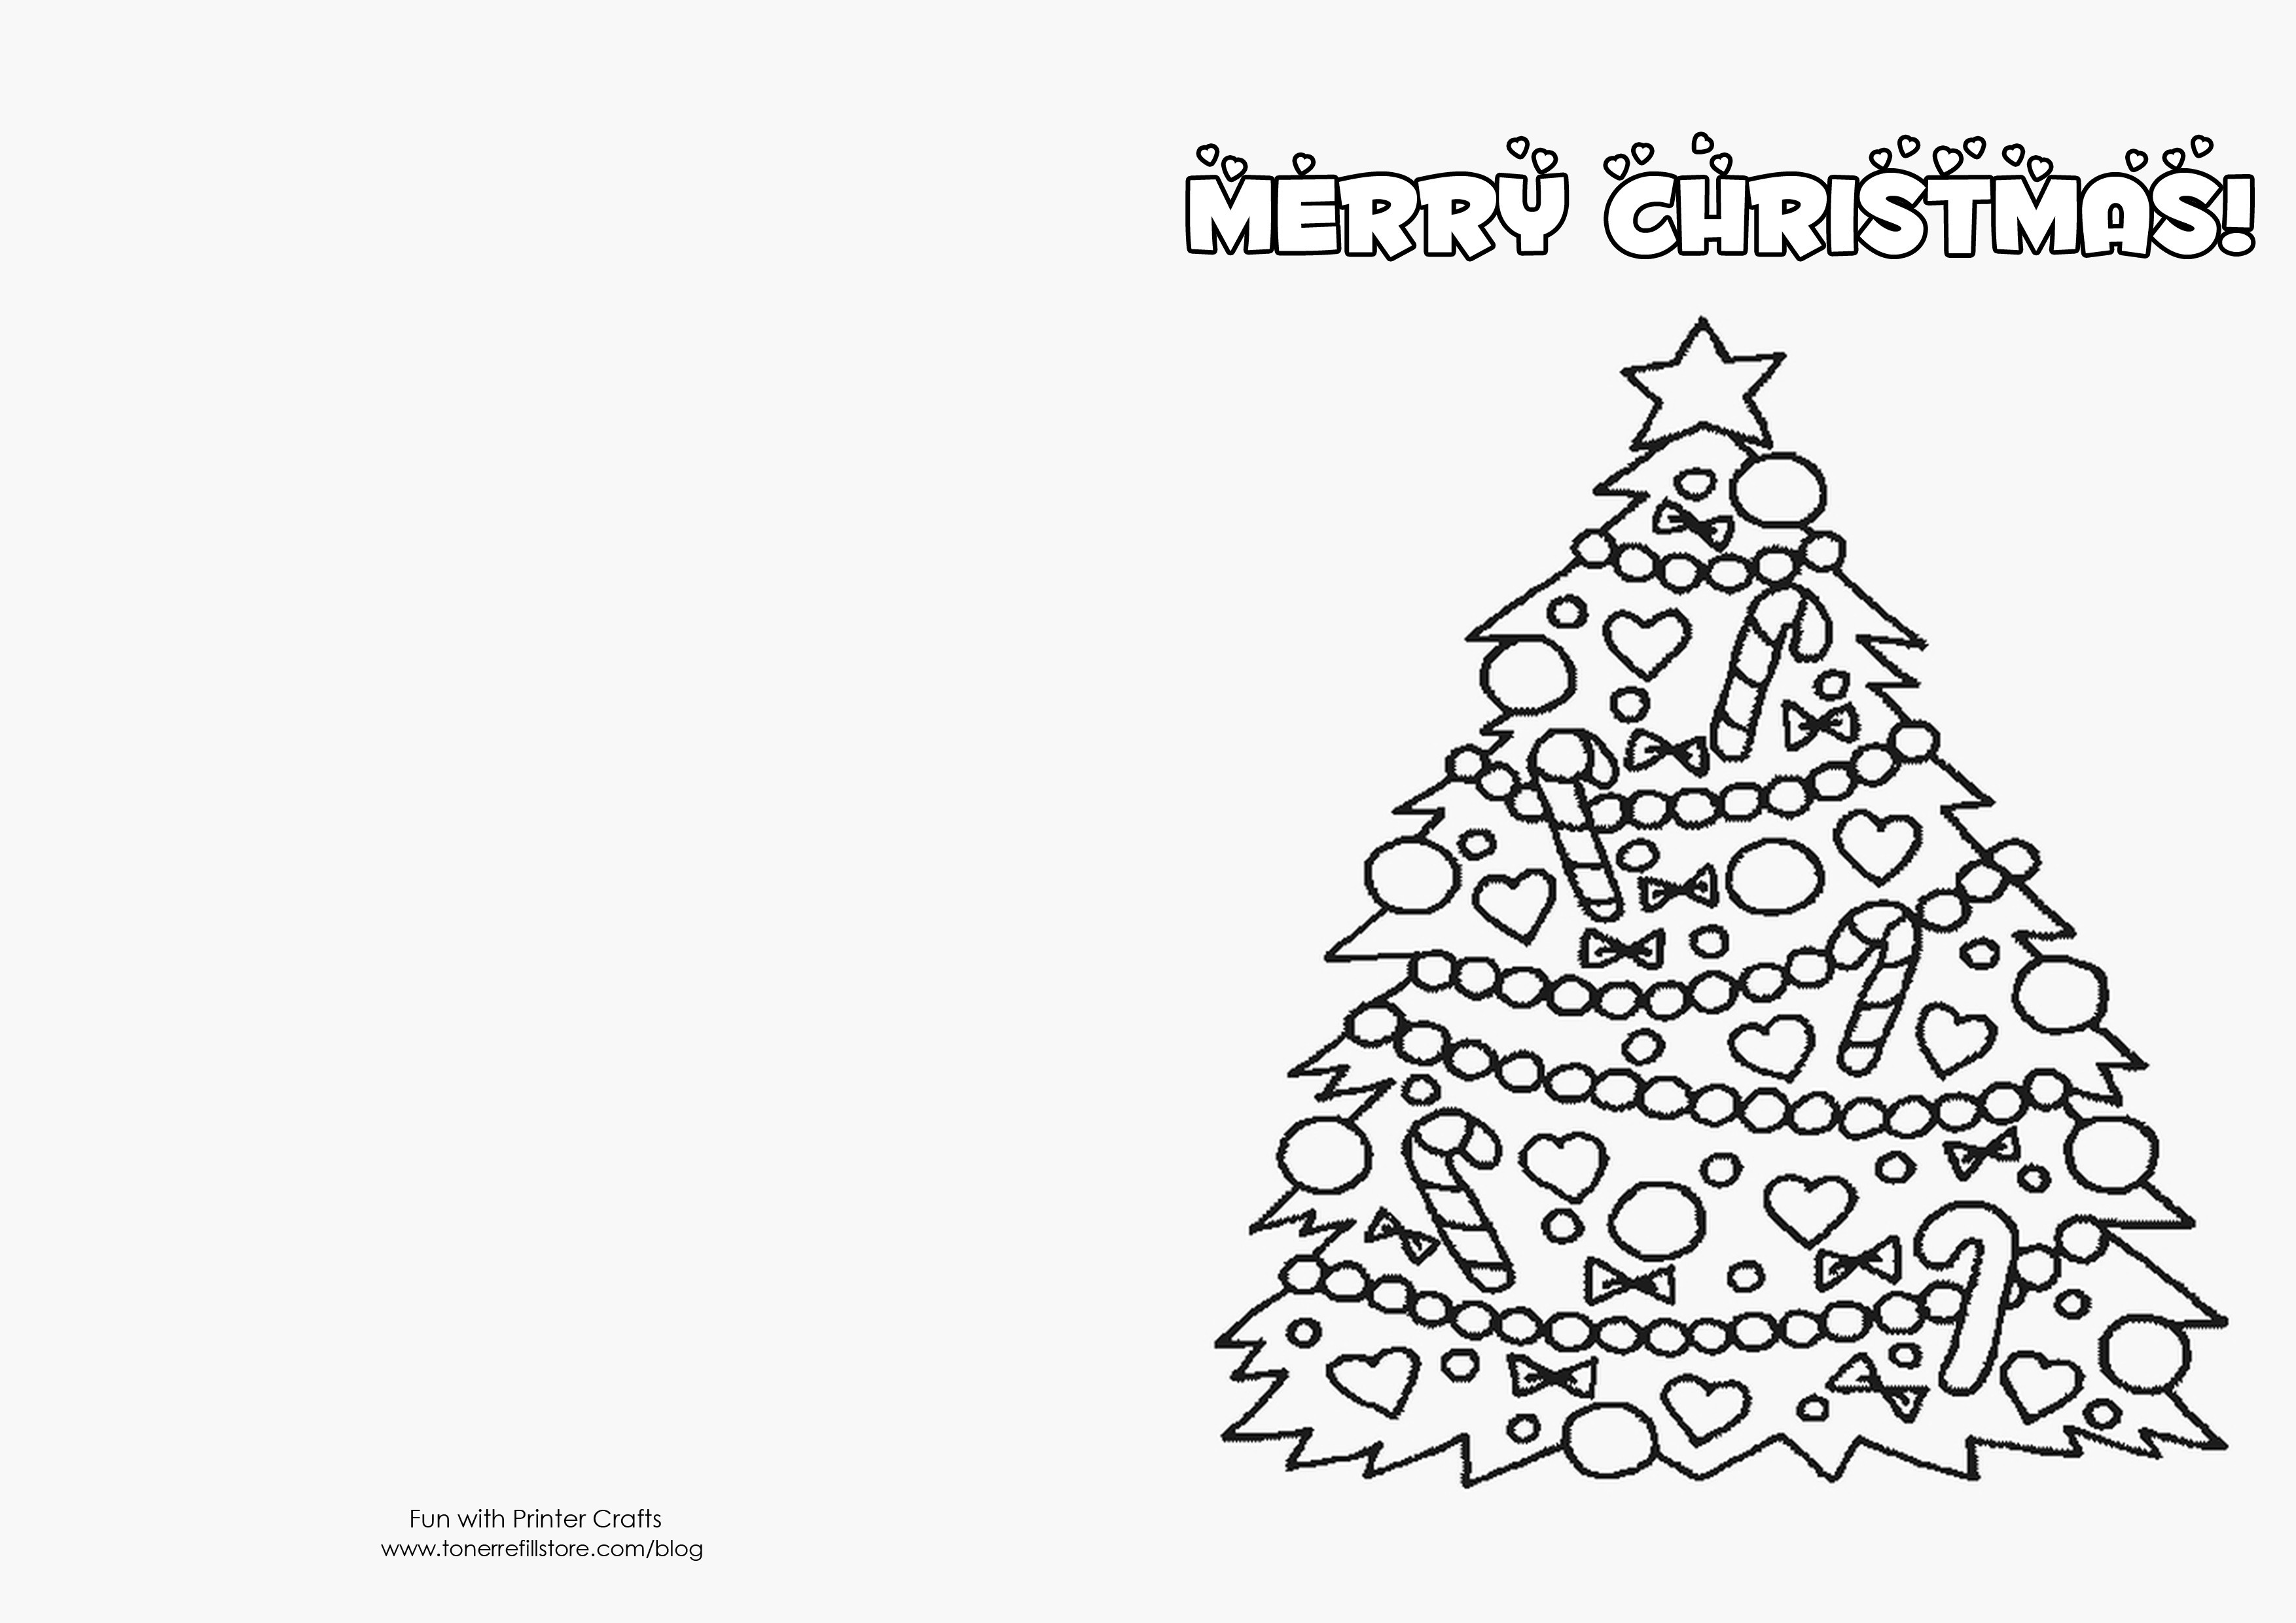 Christmas Coloring Card Printable With Pictures For Kids To Color Free Merry